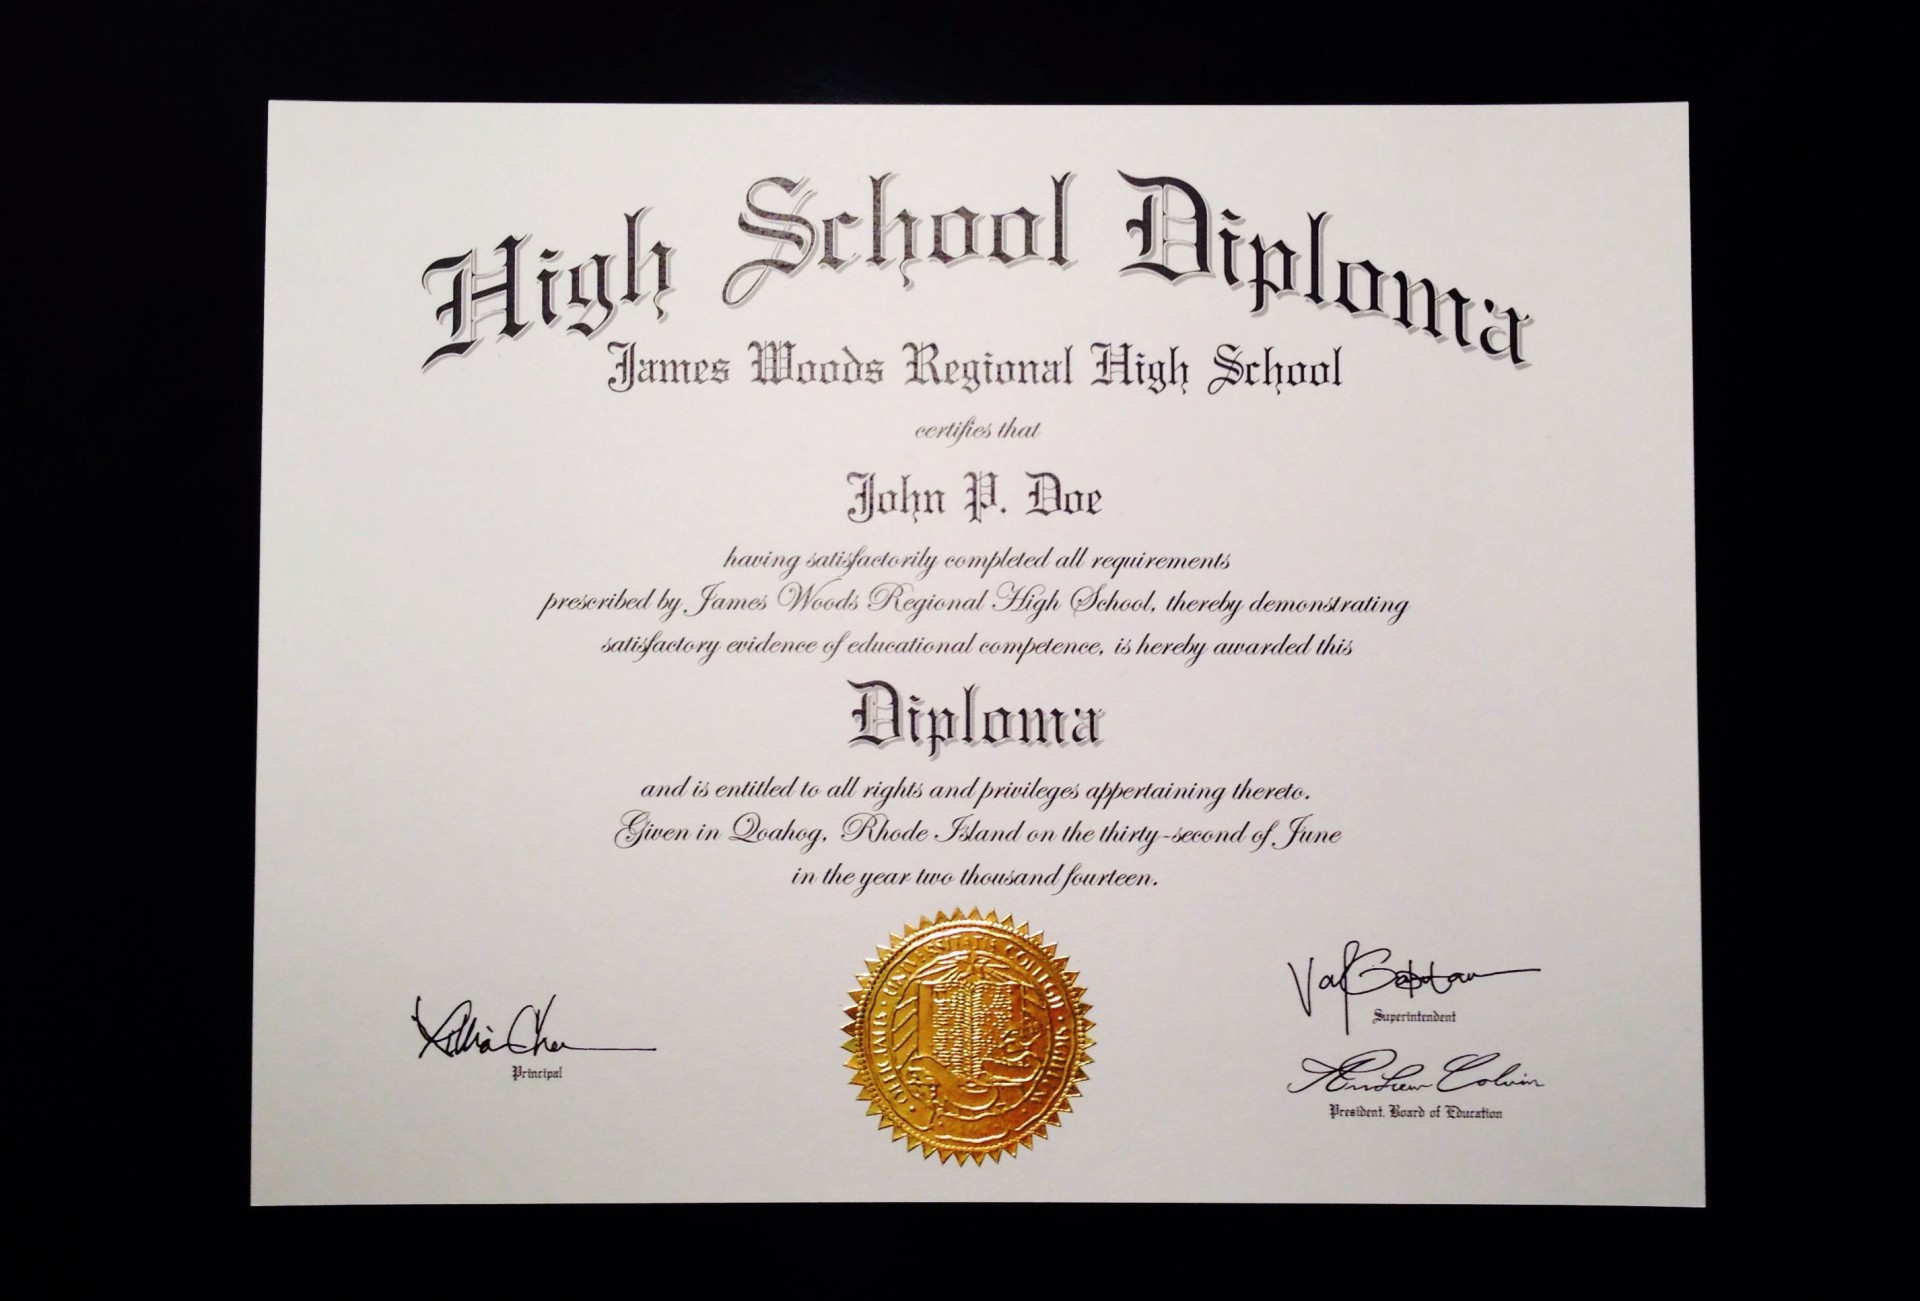 002 Unforgettable Free Printable High School Diploma Template Def  With Seal1920